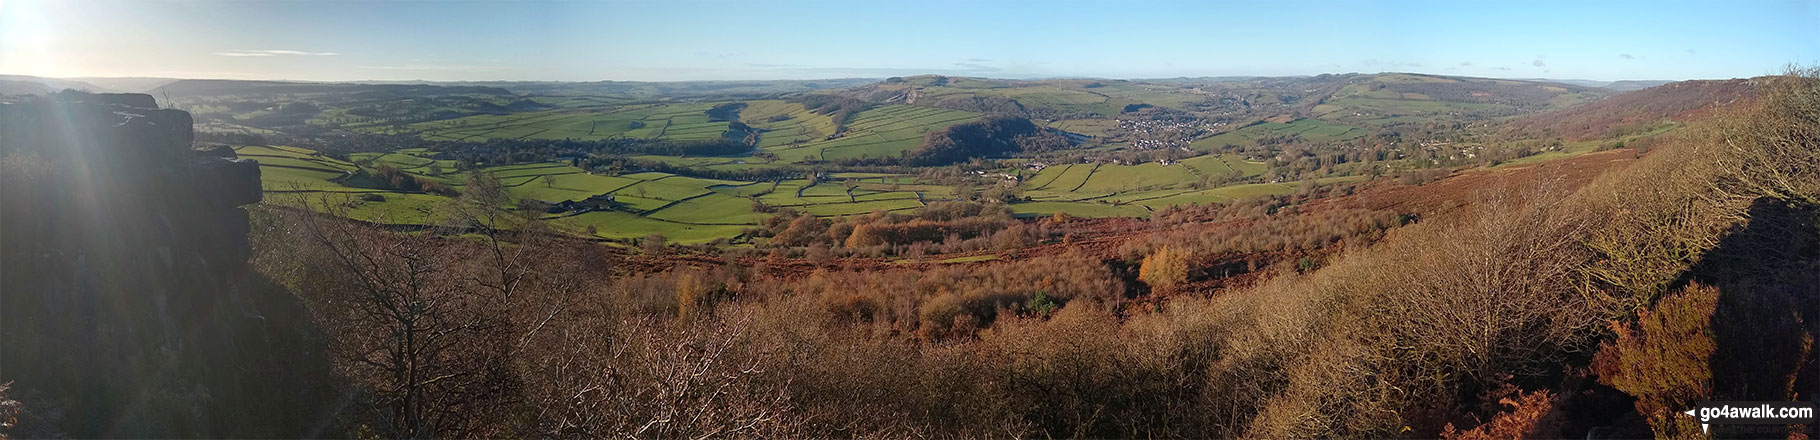 Curbar, Calver, The Derwent Valley and Baslow from Baslow Edge